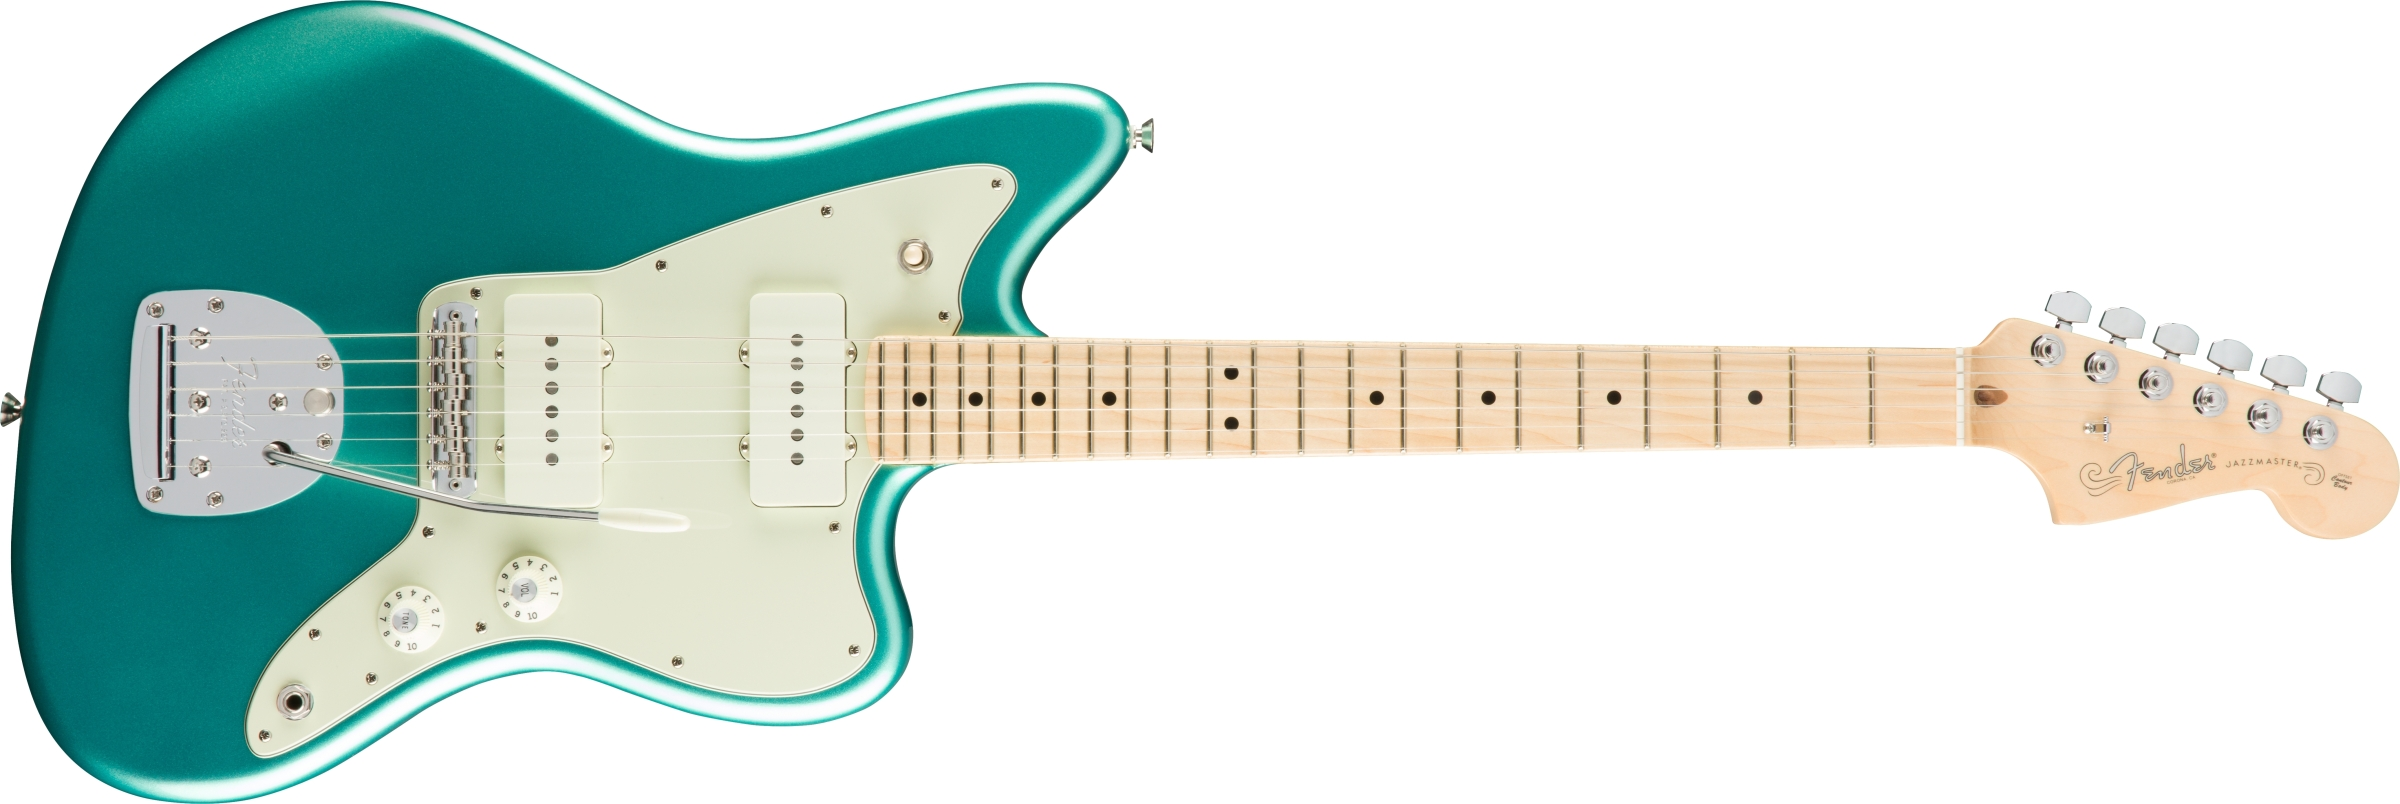 American Professional Jazzmaster Electric Guitars Fender Deluxe Players Strat Wiring Diagram Tap To Expand